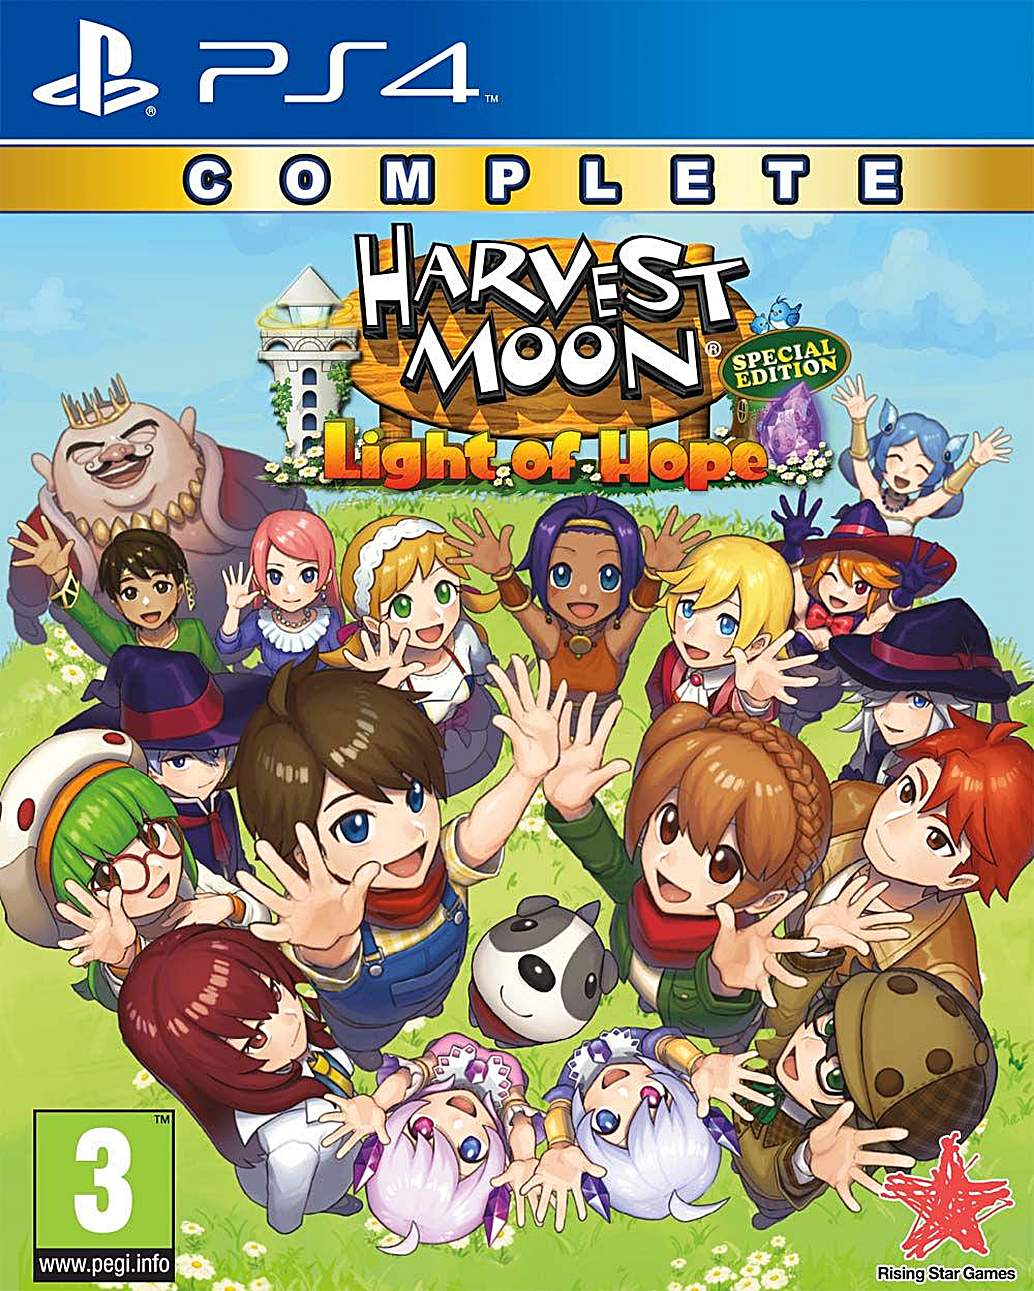 Harvest Moon - Light of Hope - Complete - Special Edition